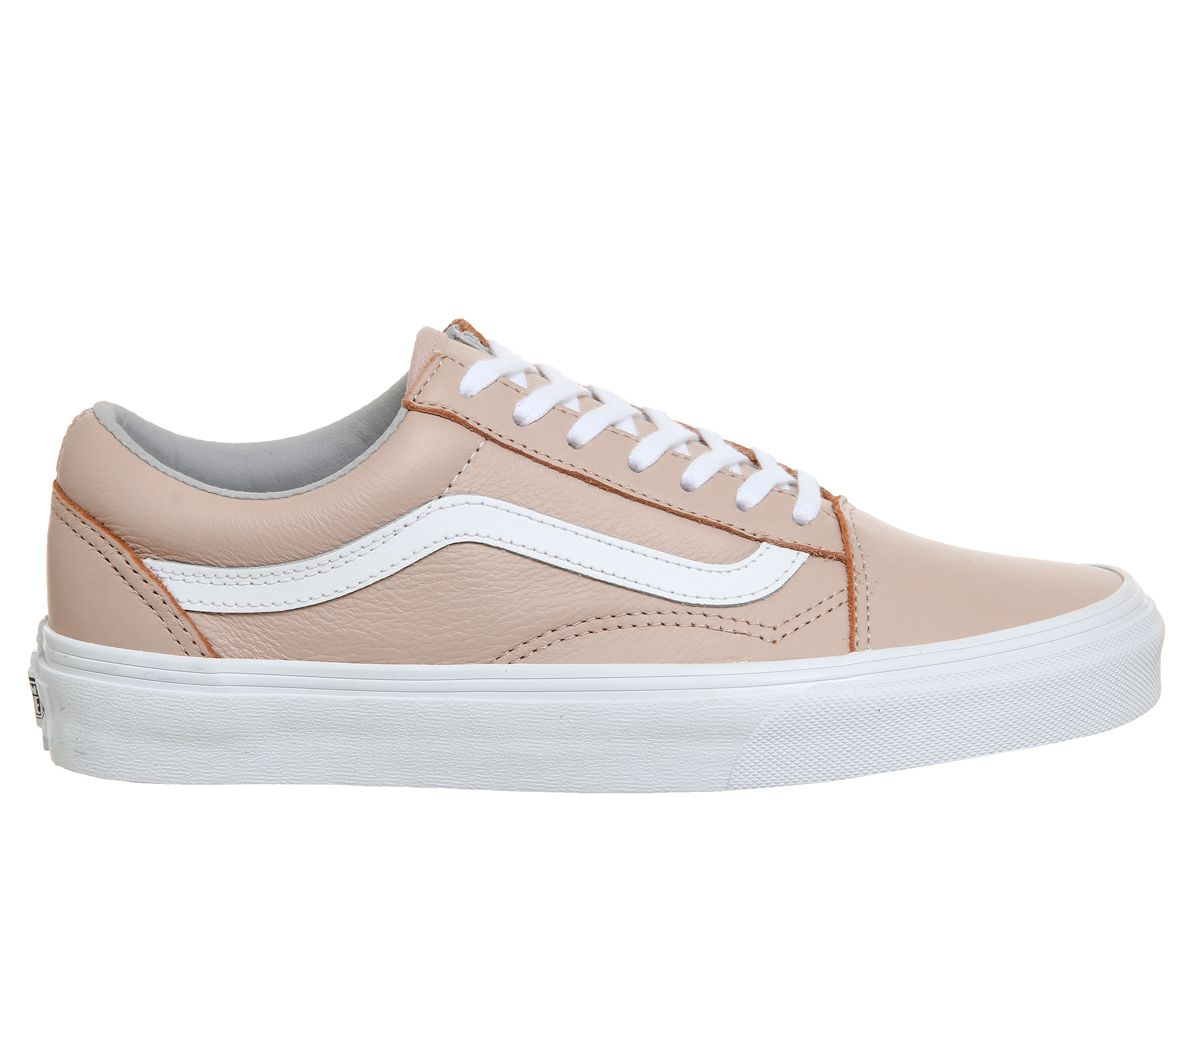 67266e3bd4 Vans Old Skool Oxford Evening Sand Leather - Unisex Sports